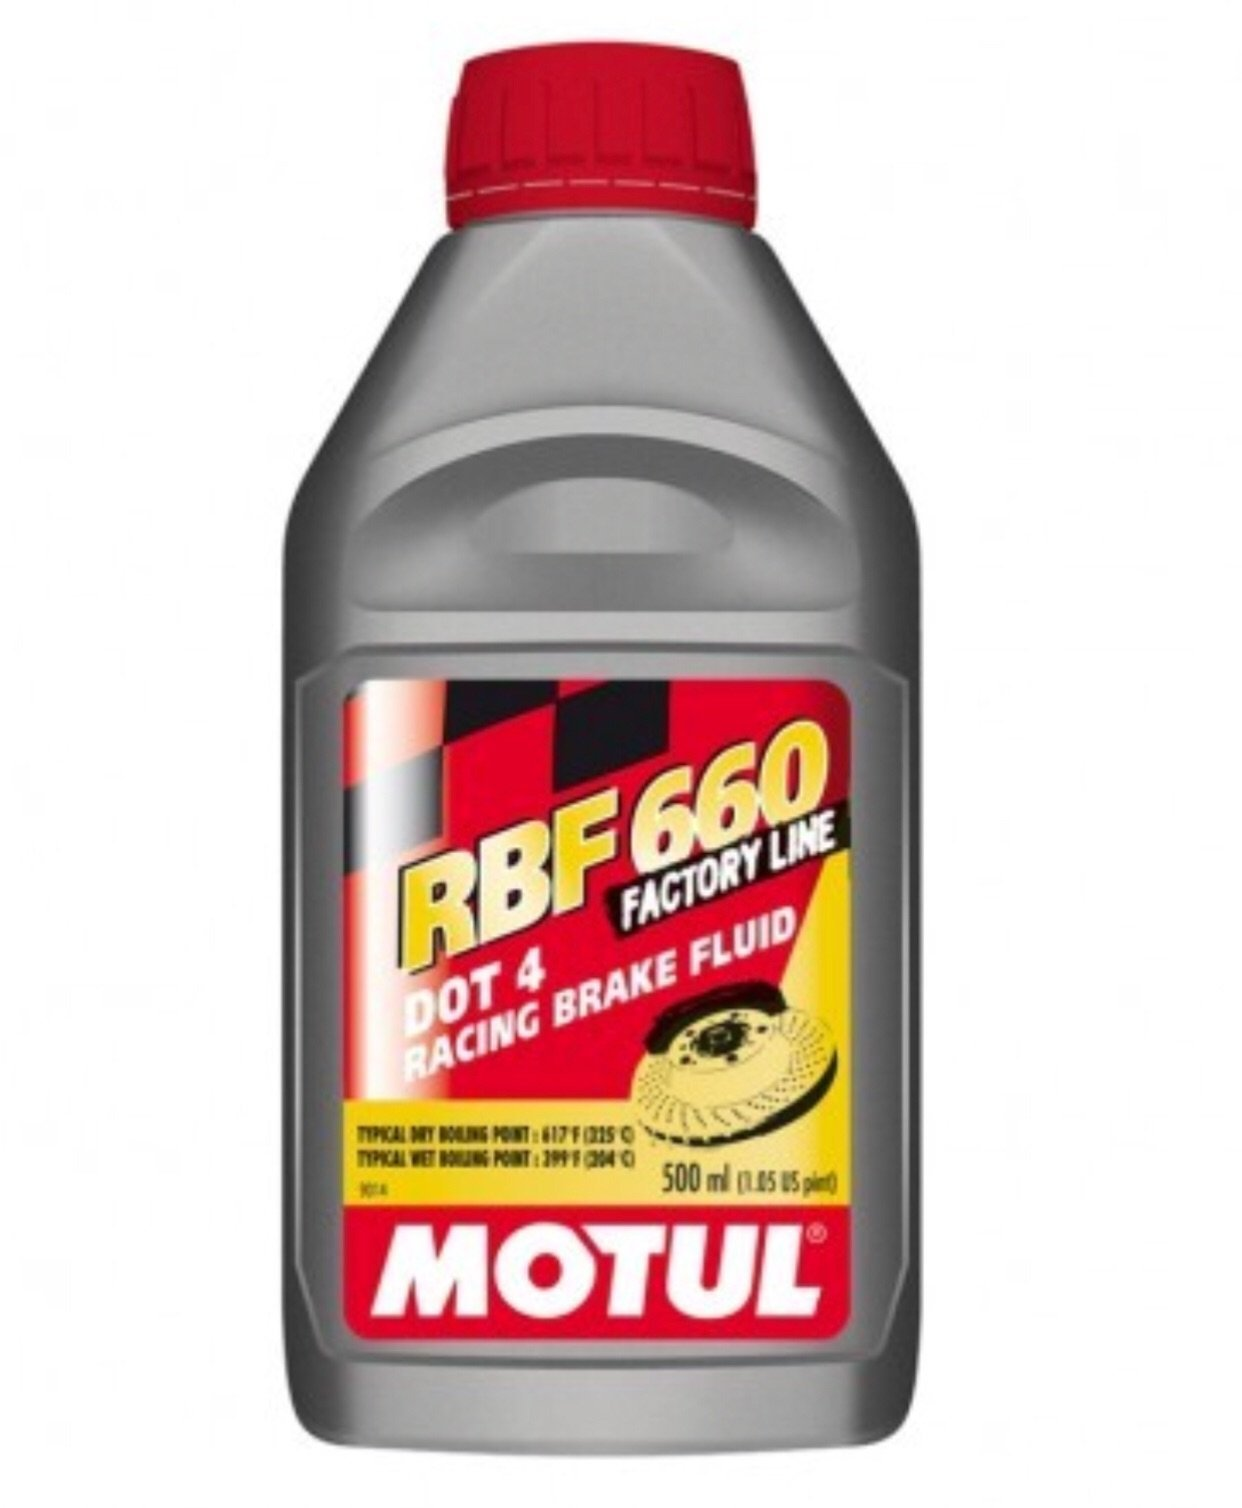 RBF660 Factory Line, Brake Fluid, Motul - Averys Motorcycles